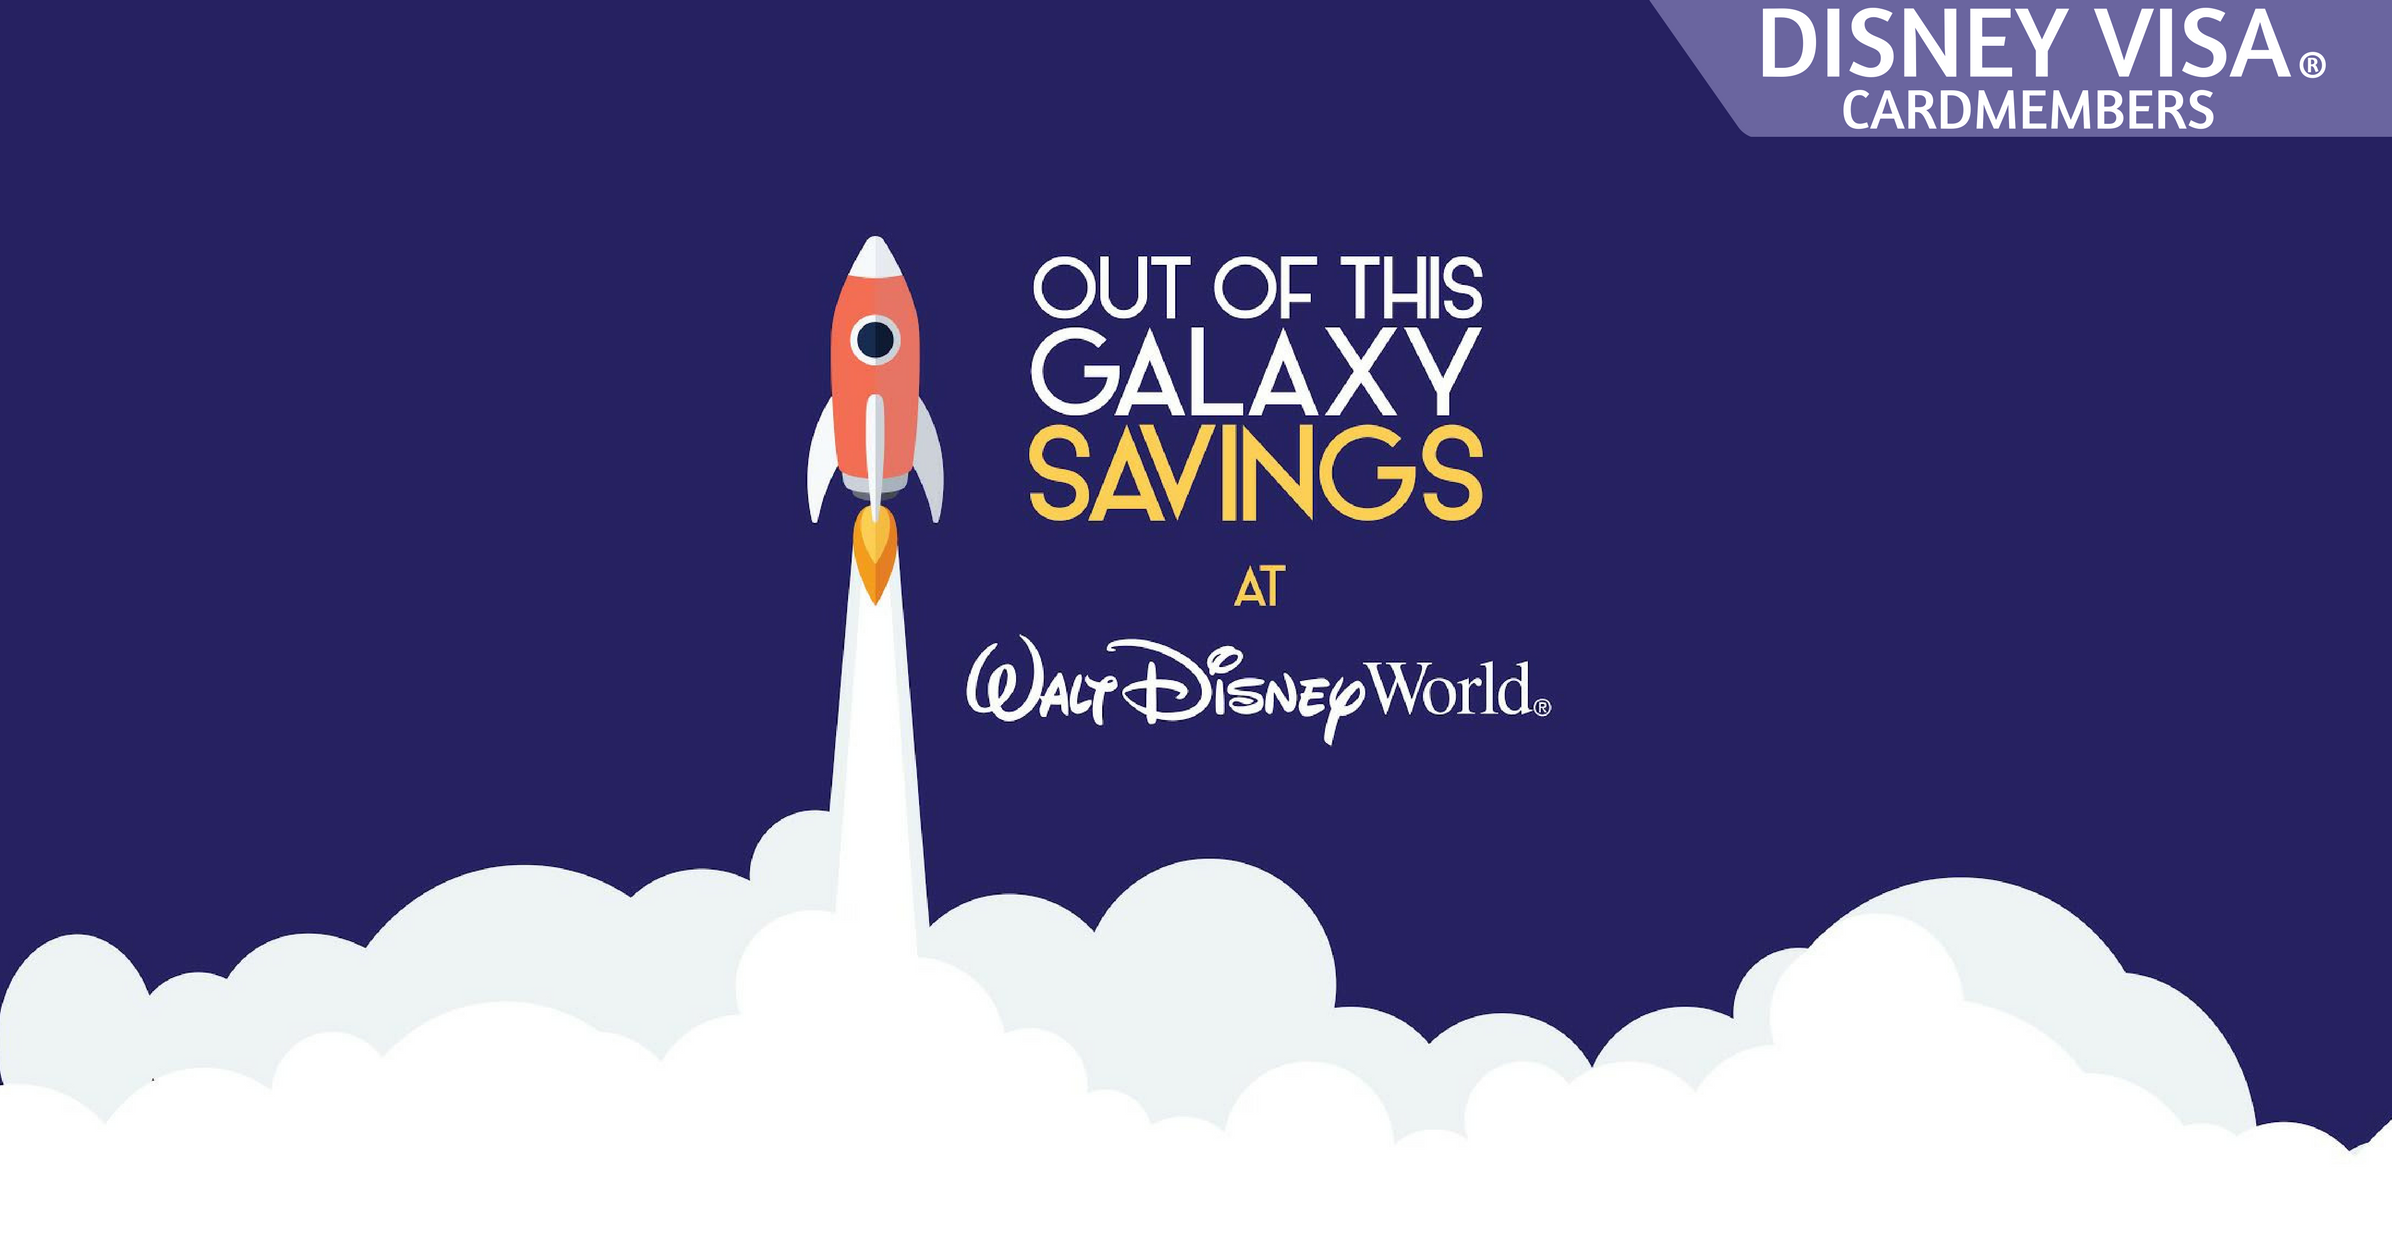 Out of this Galaxy Savings with Disney Visa